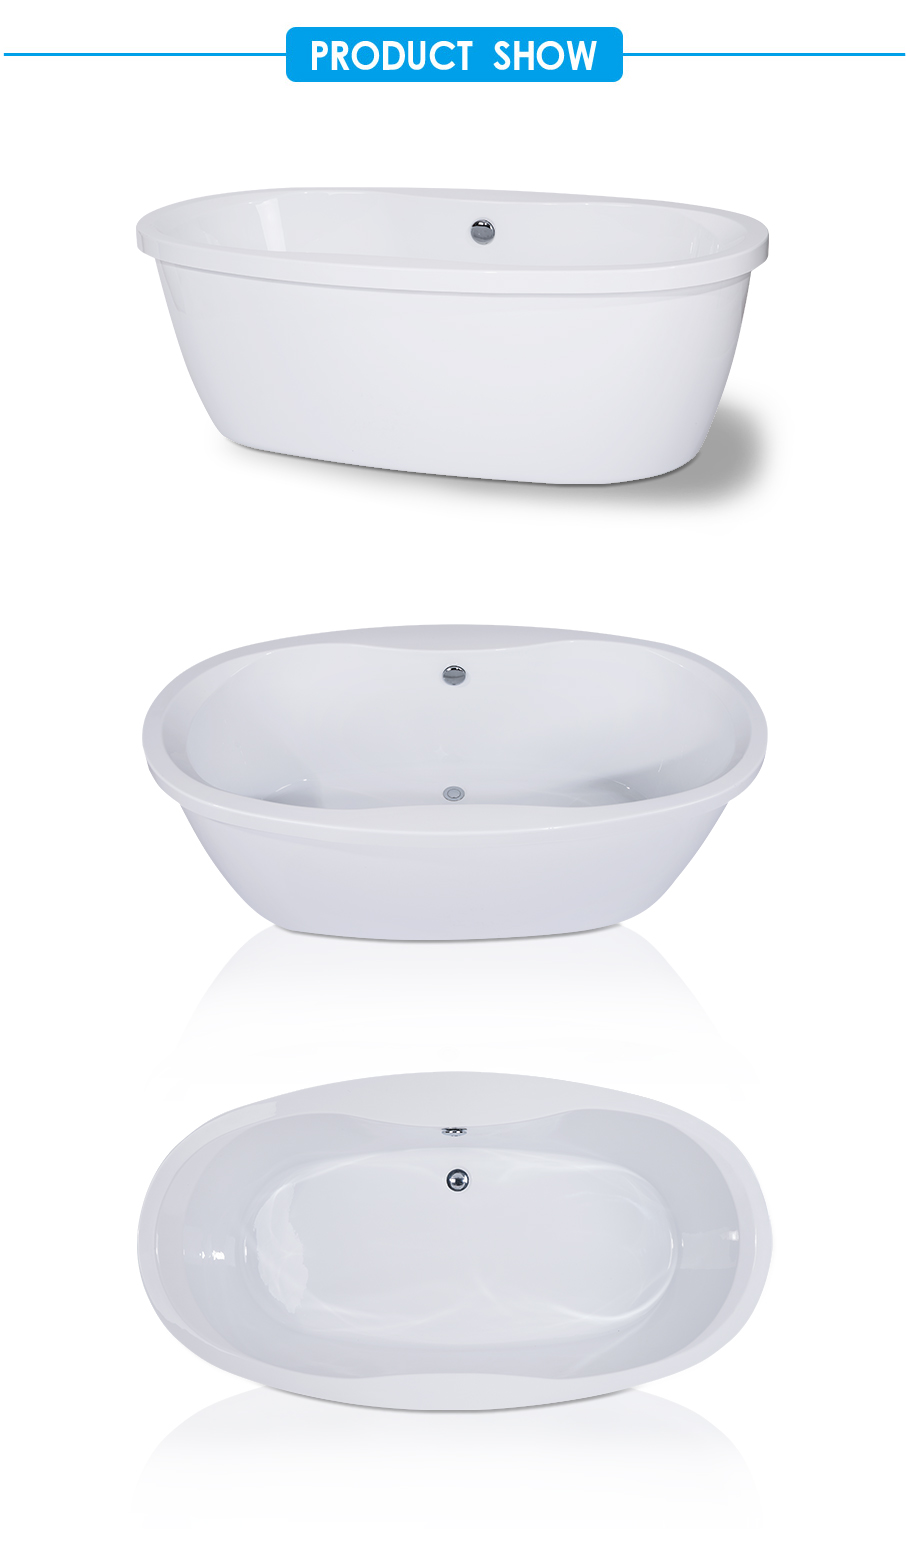 Center Drain Bathtub with Fluted Shroud in White